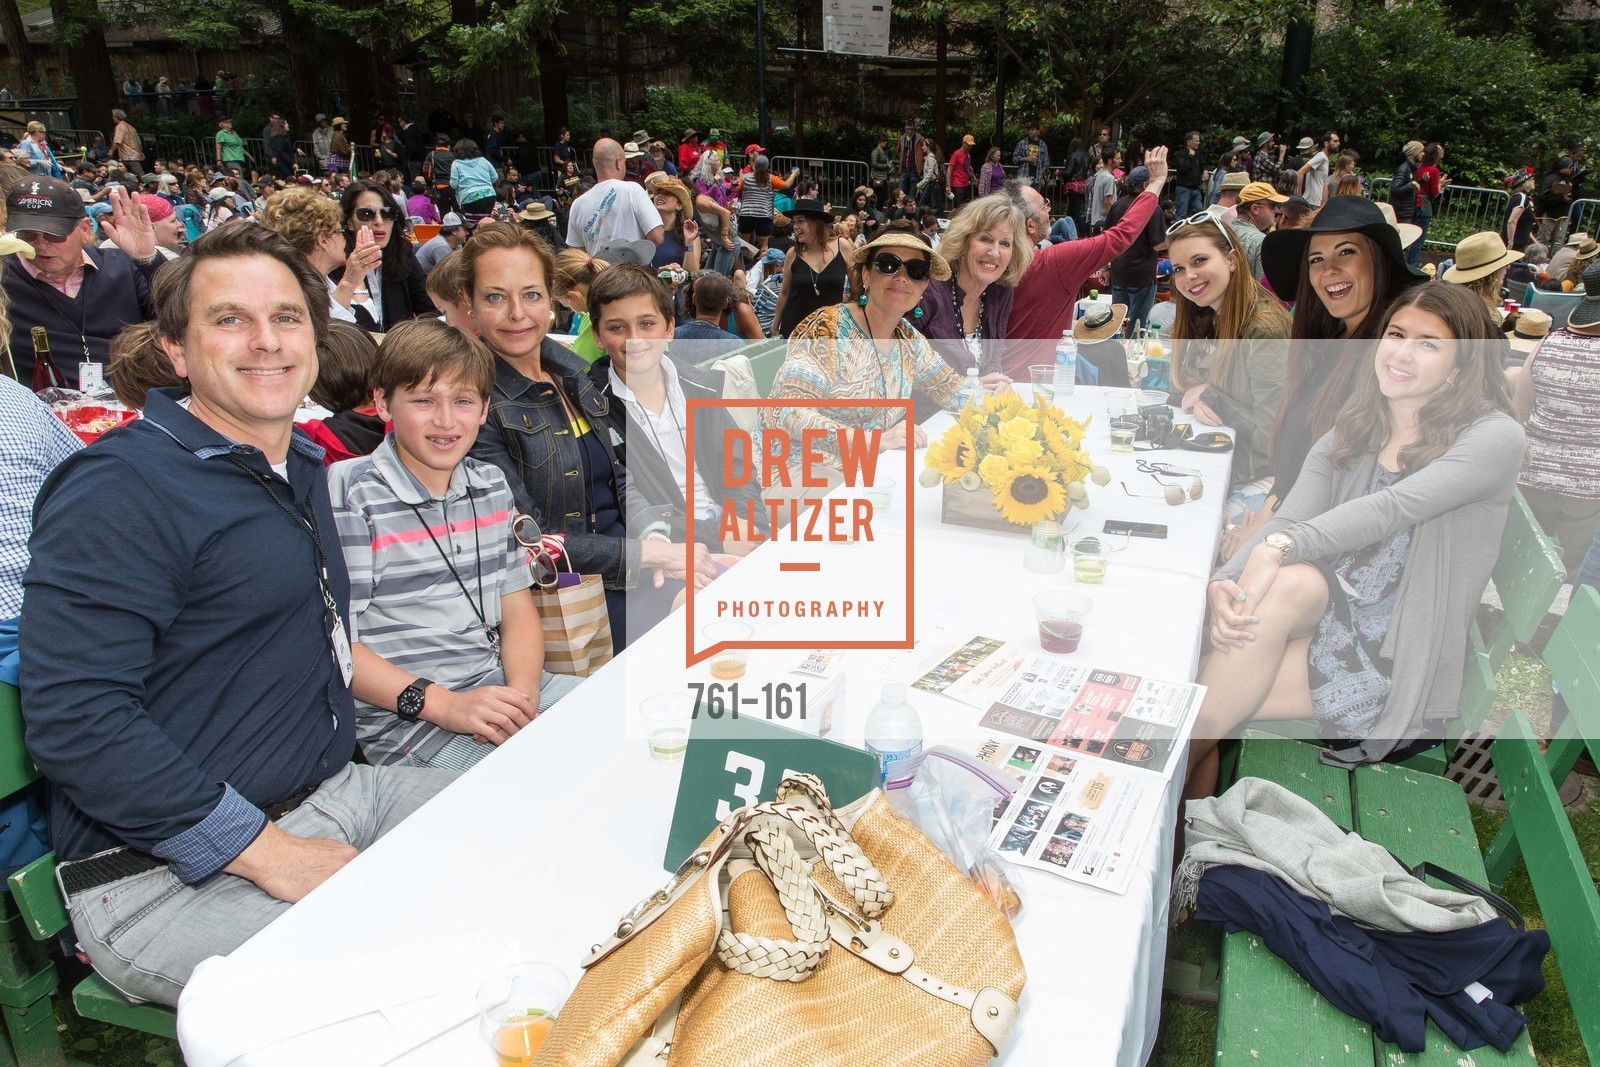 Gregory Malin, Sebastian Malin, Charlot Malin, Benjamin Malin, THE BIG PICNIC Kicking off  2015 Stern Grove Season, Stern Grove. 2750 19th Avenue, June 14th, 2015,Drew Altizer, Drew Altizer Photography, full-service agency, private events, San Francisco photographer, photographer california